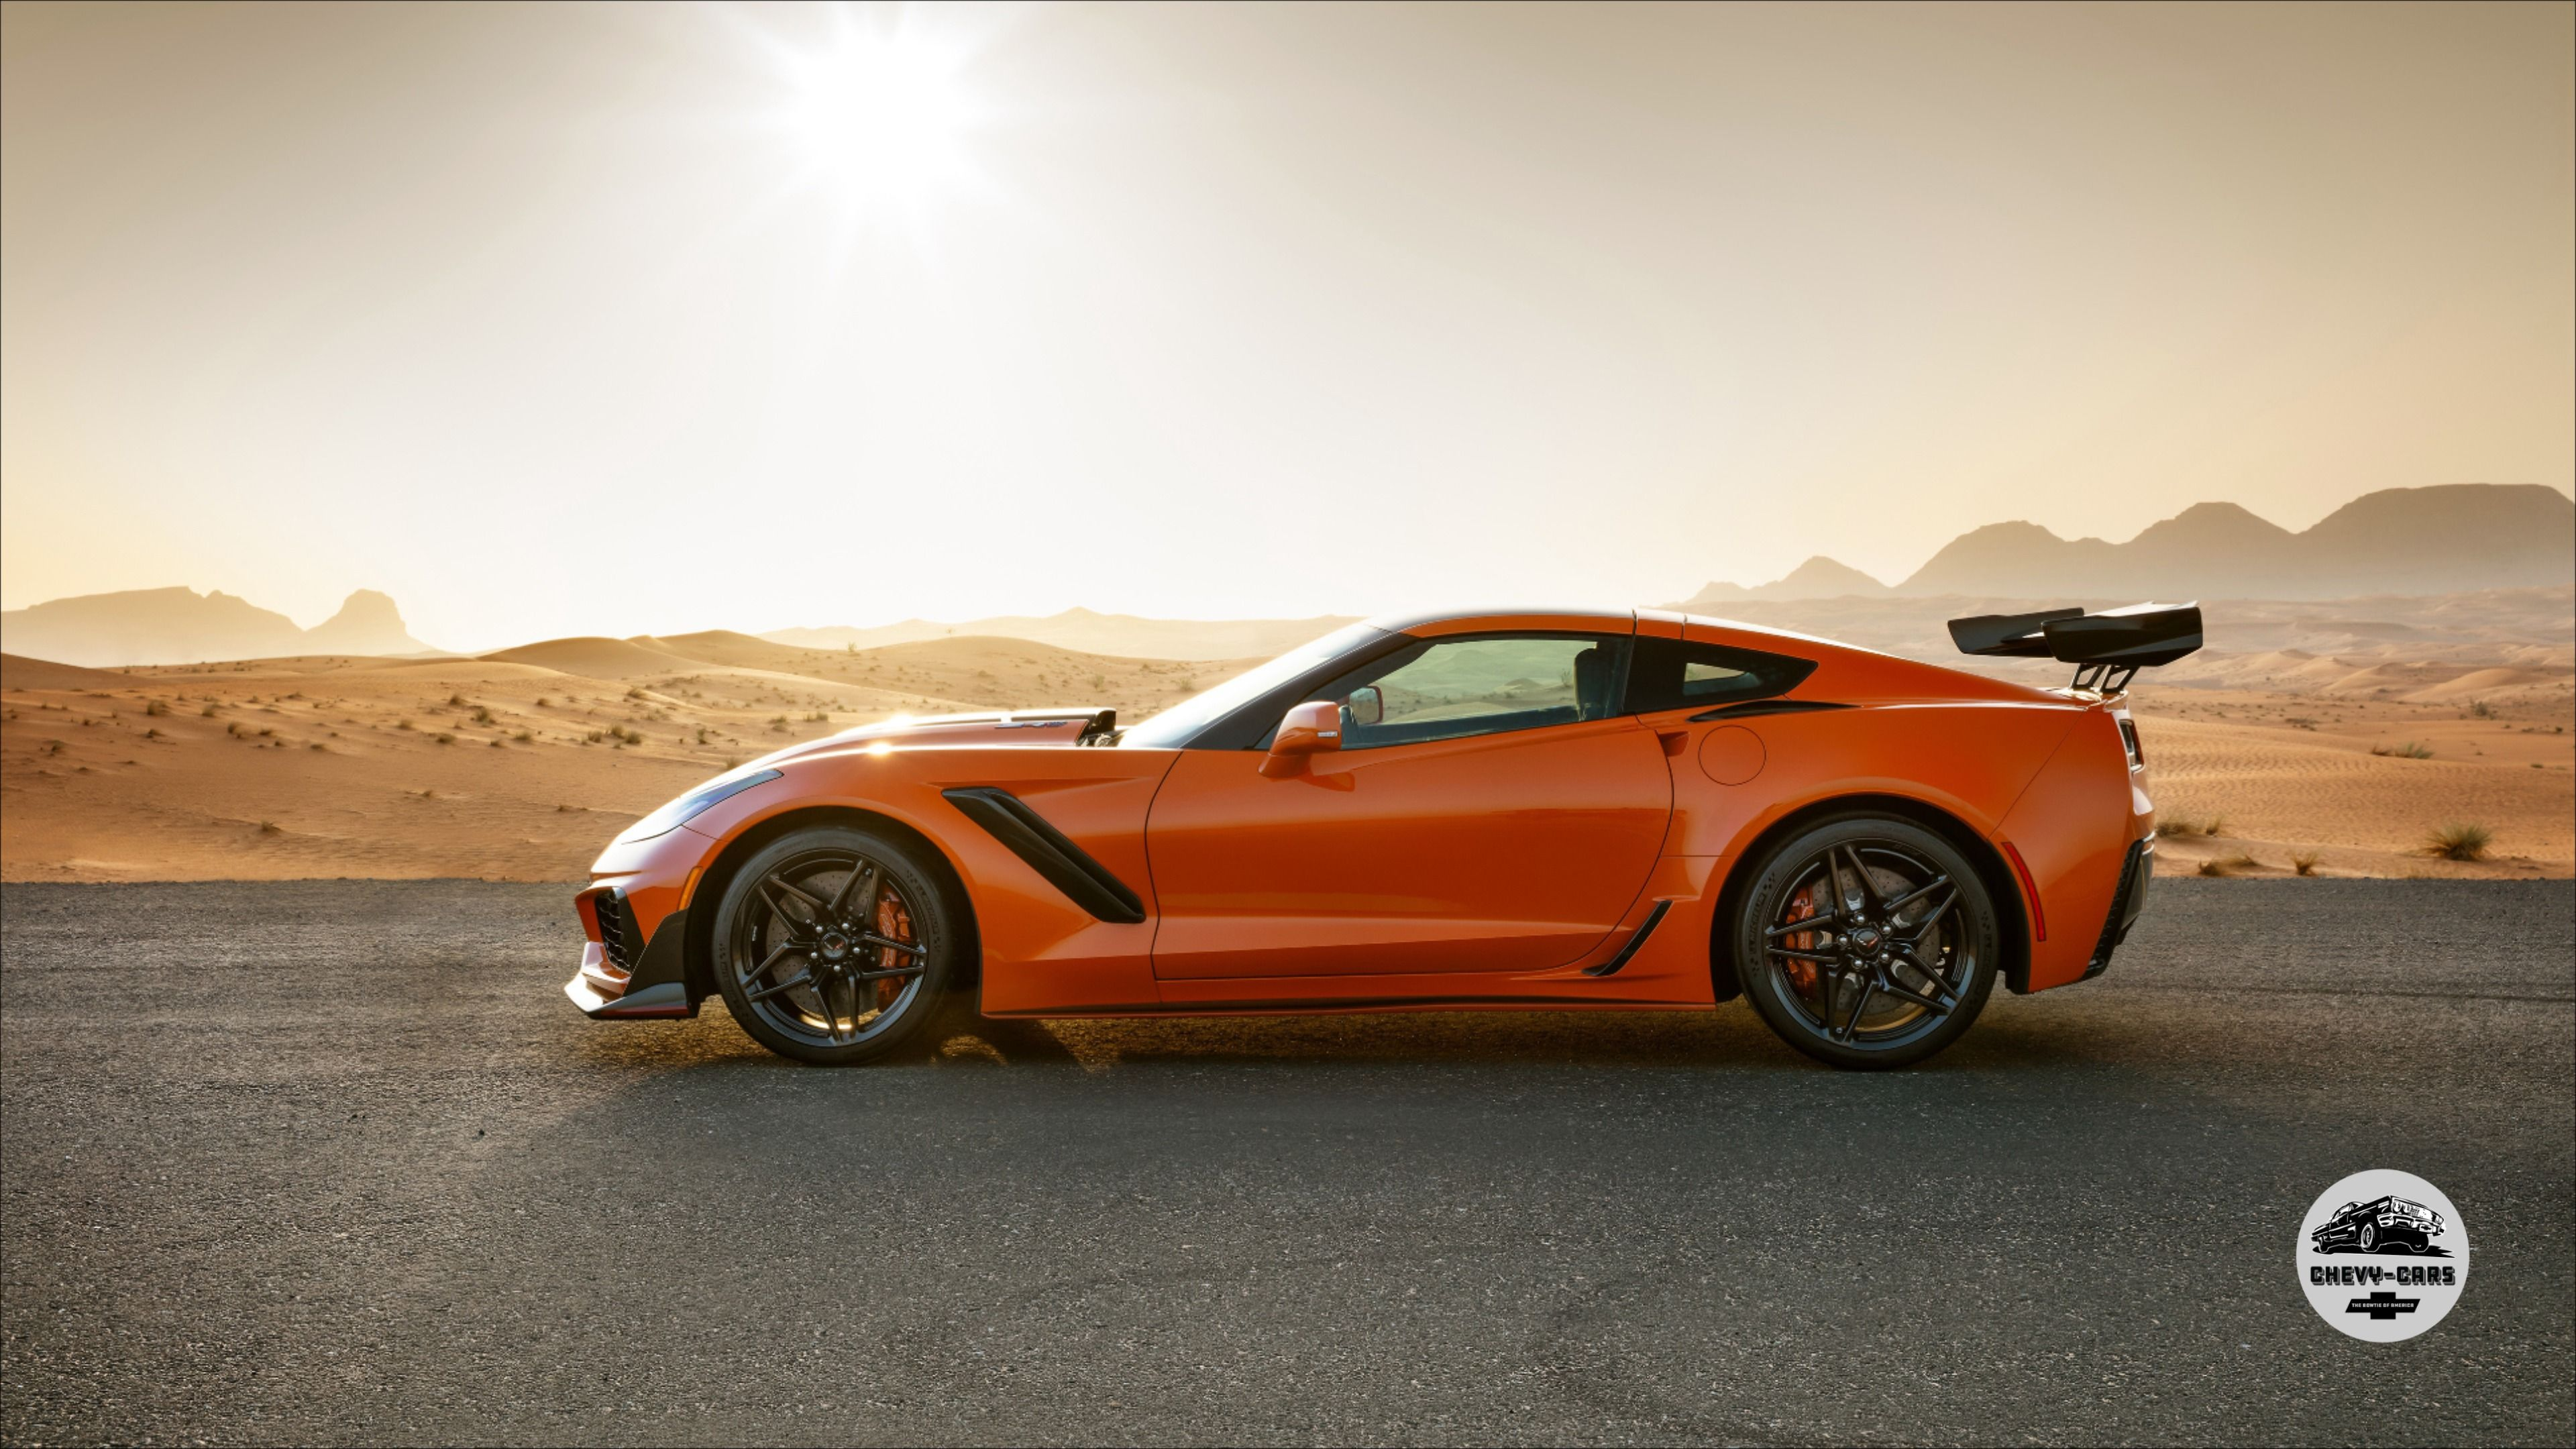 2019 Corvette Zr1 Review Pictures Mpg Pricing In 2020